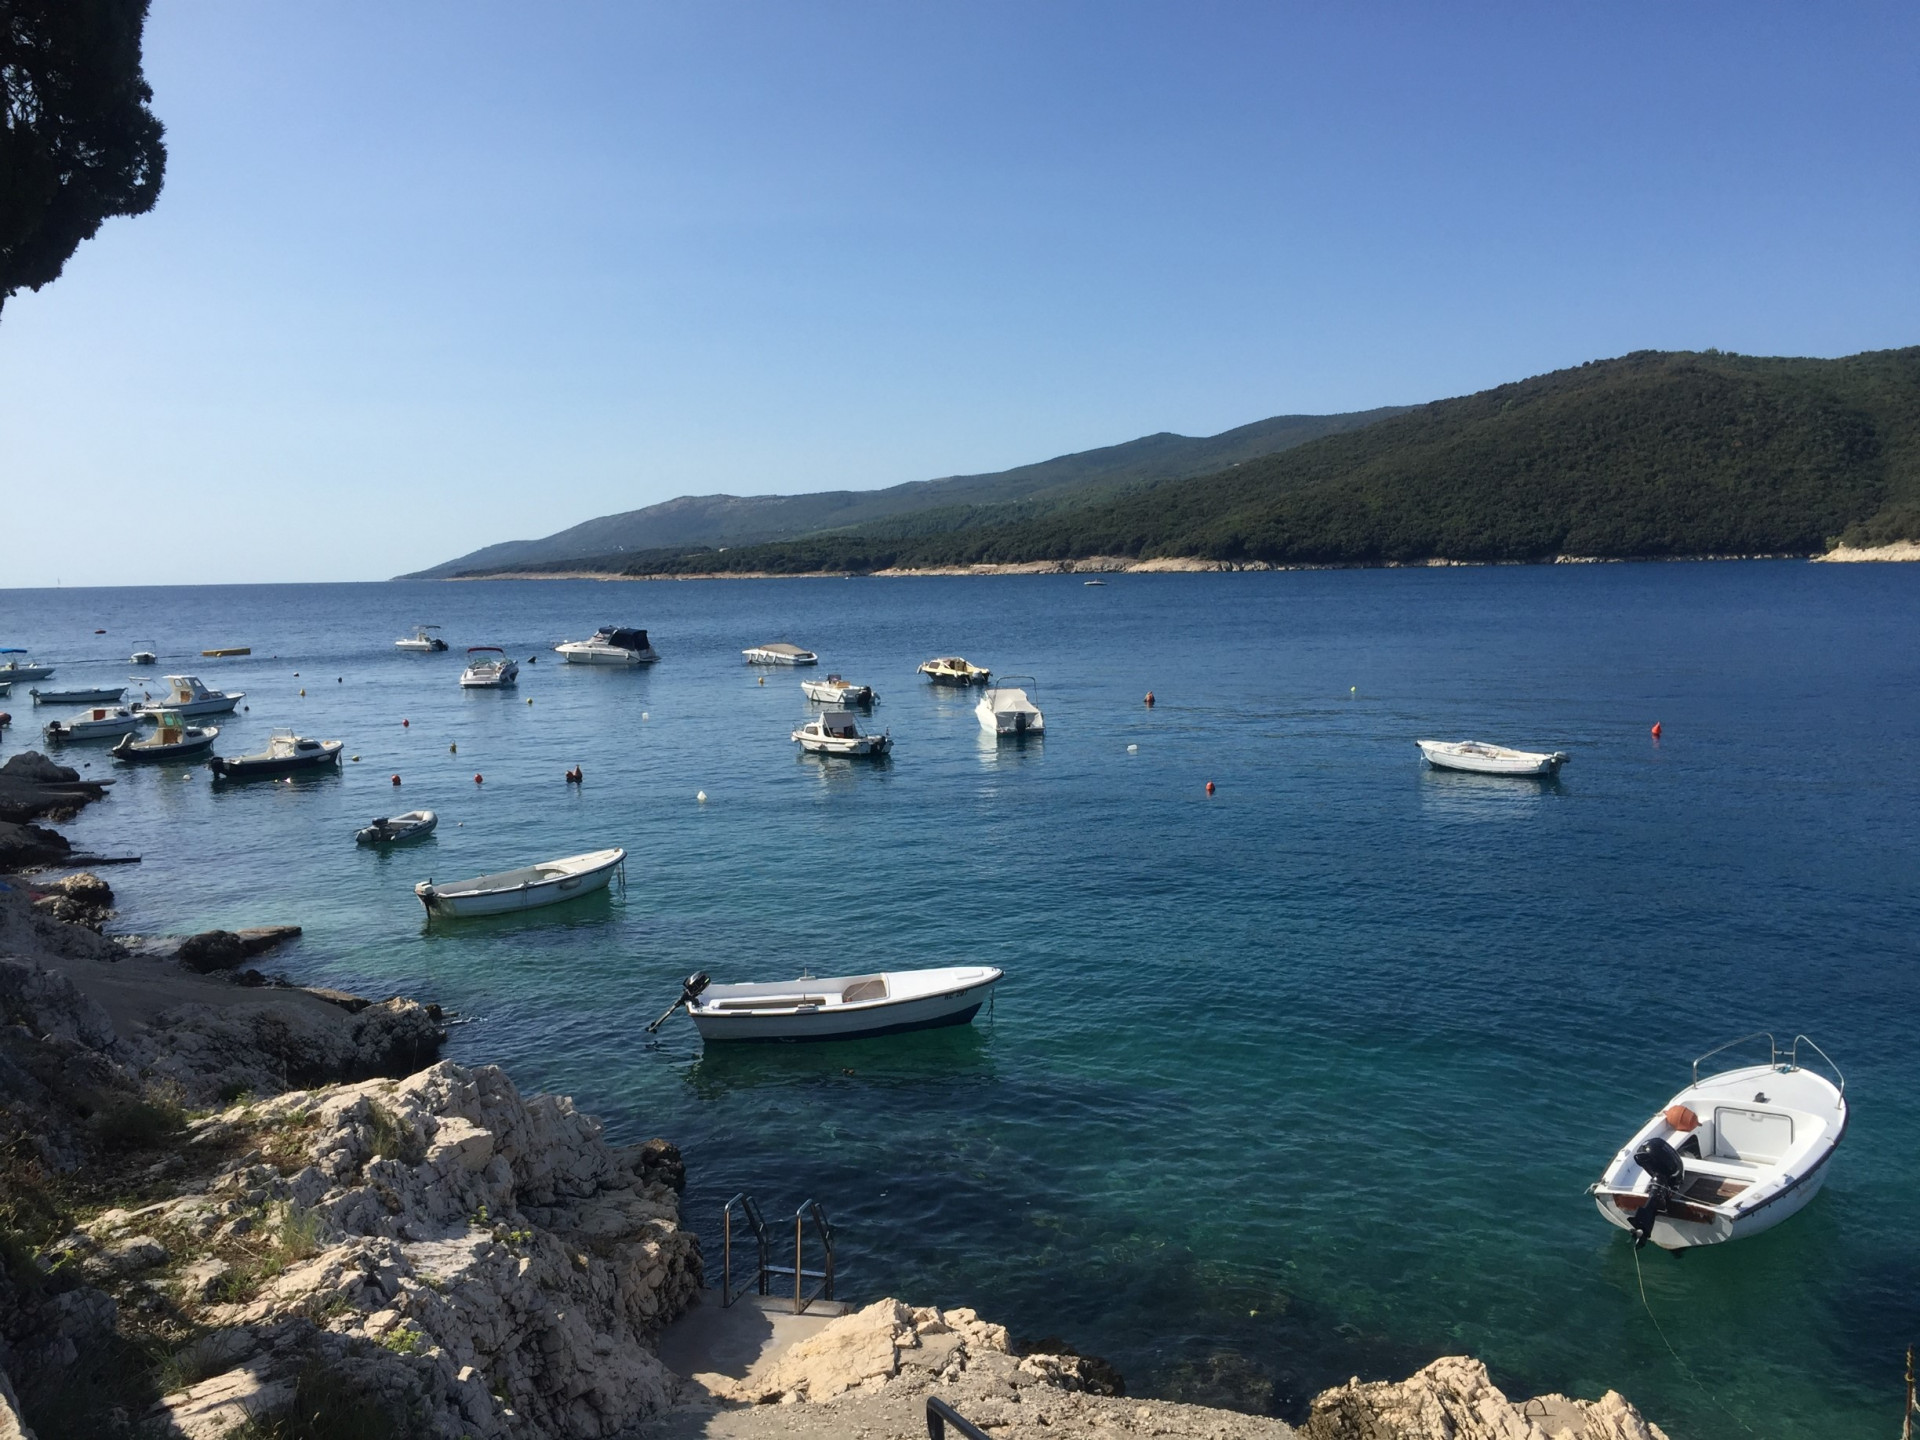 Villas with pool, holiday houses and hotels in Croatia - Charming Croatia